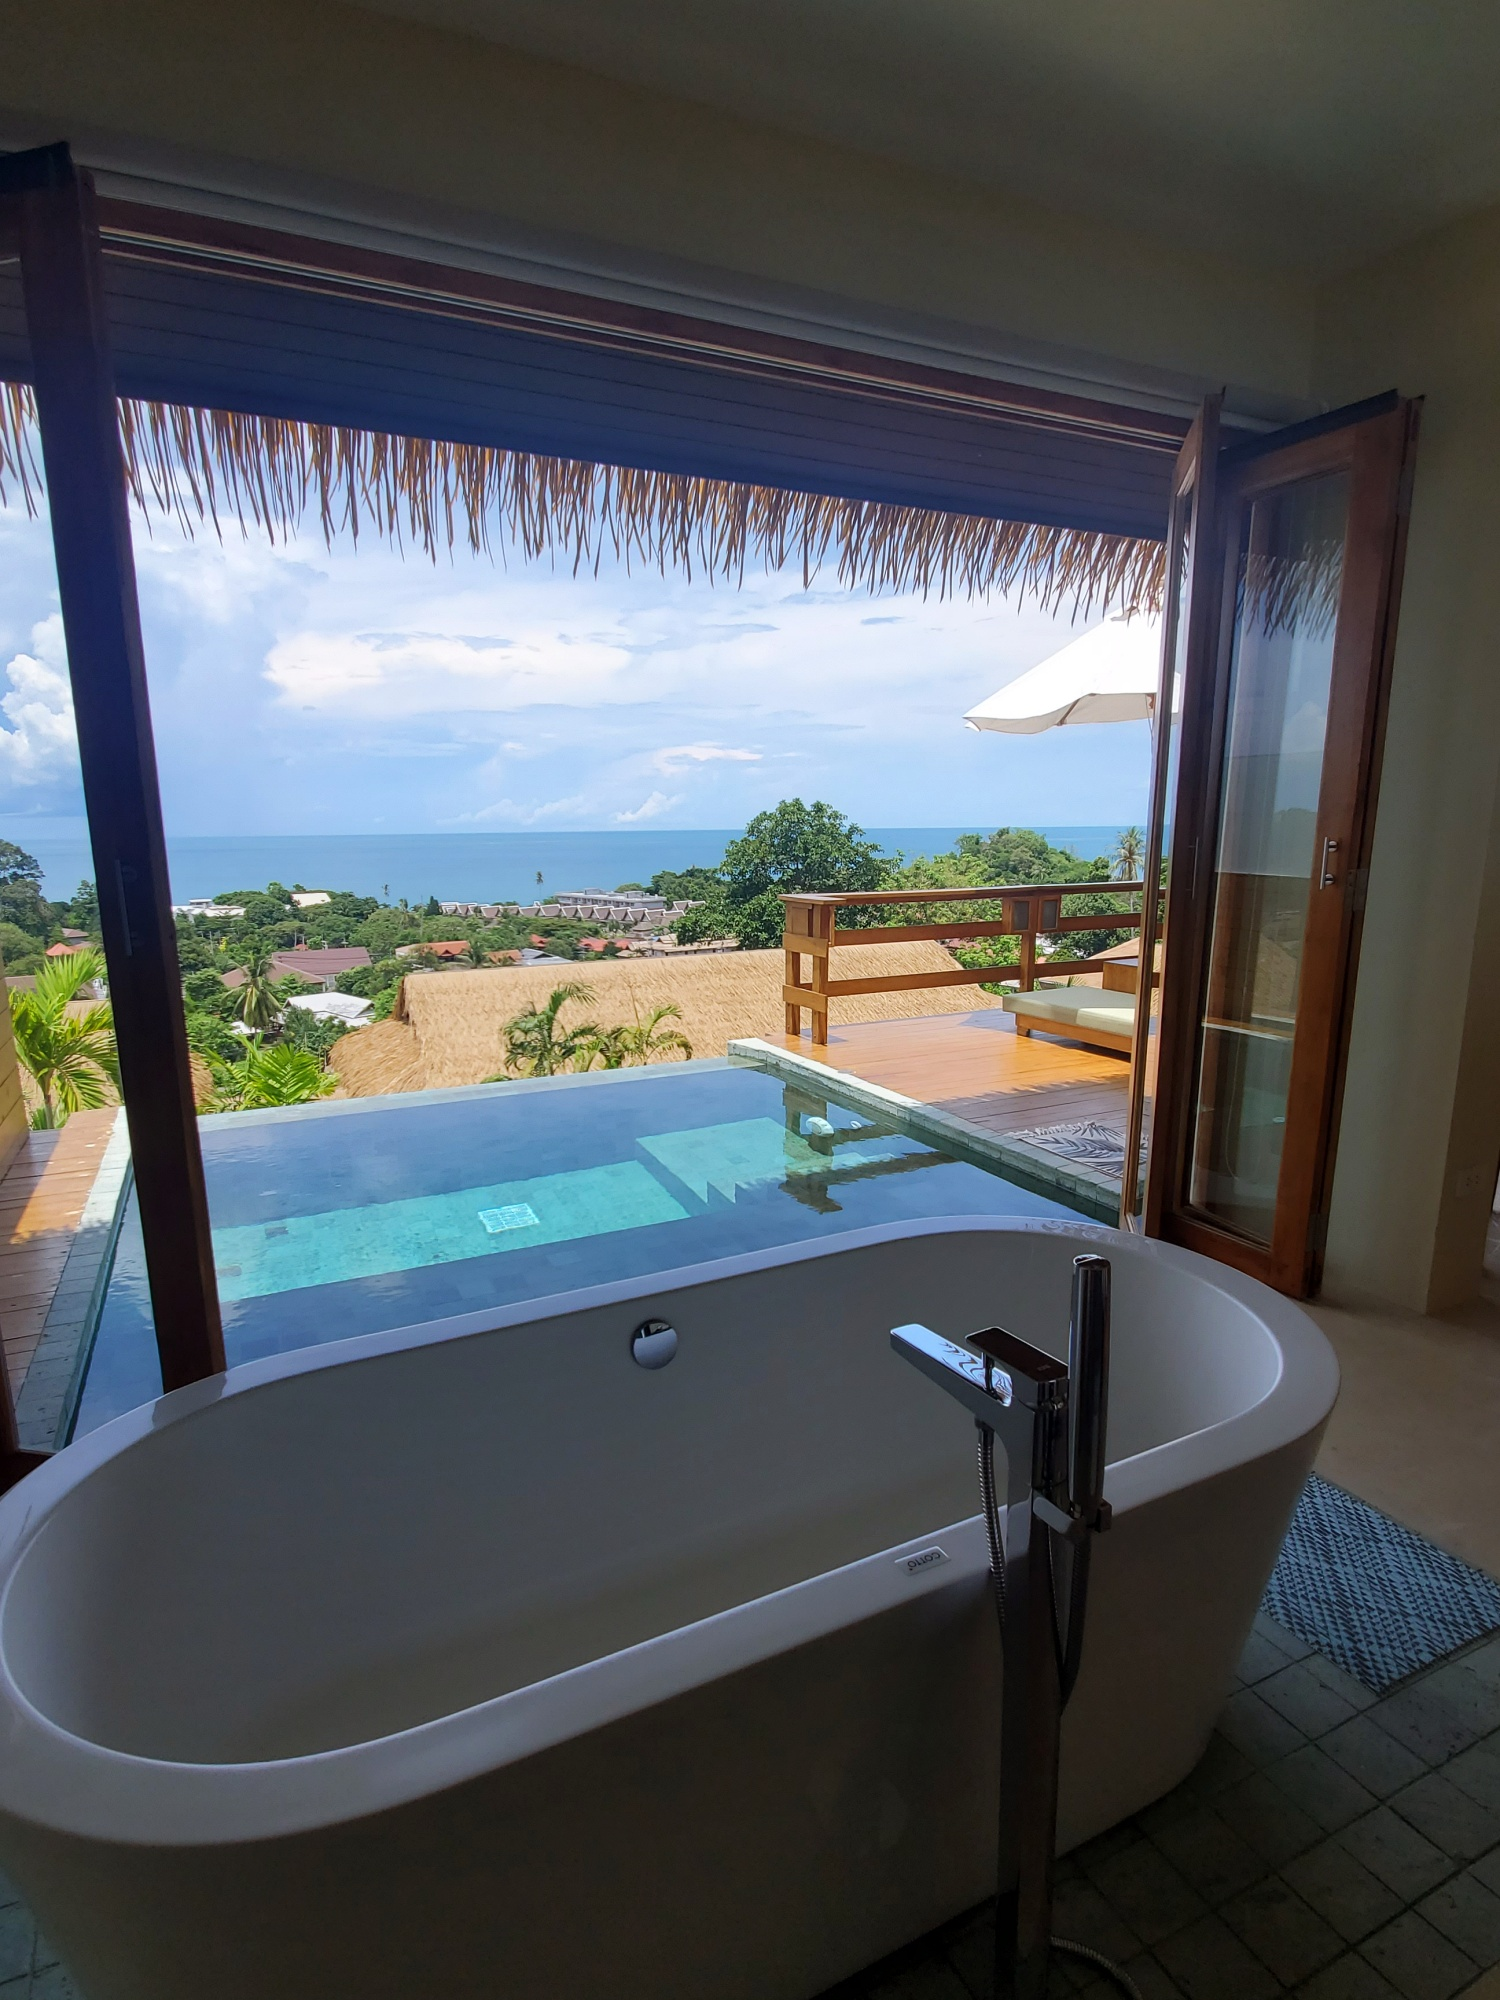 Wild Cottages Luxury and Natural bathtub